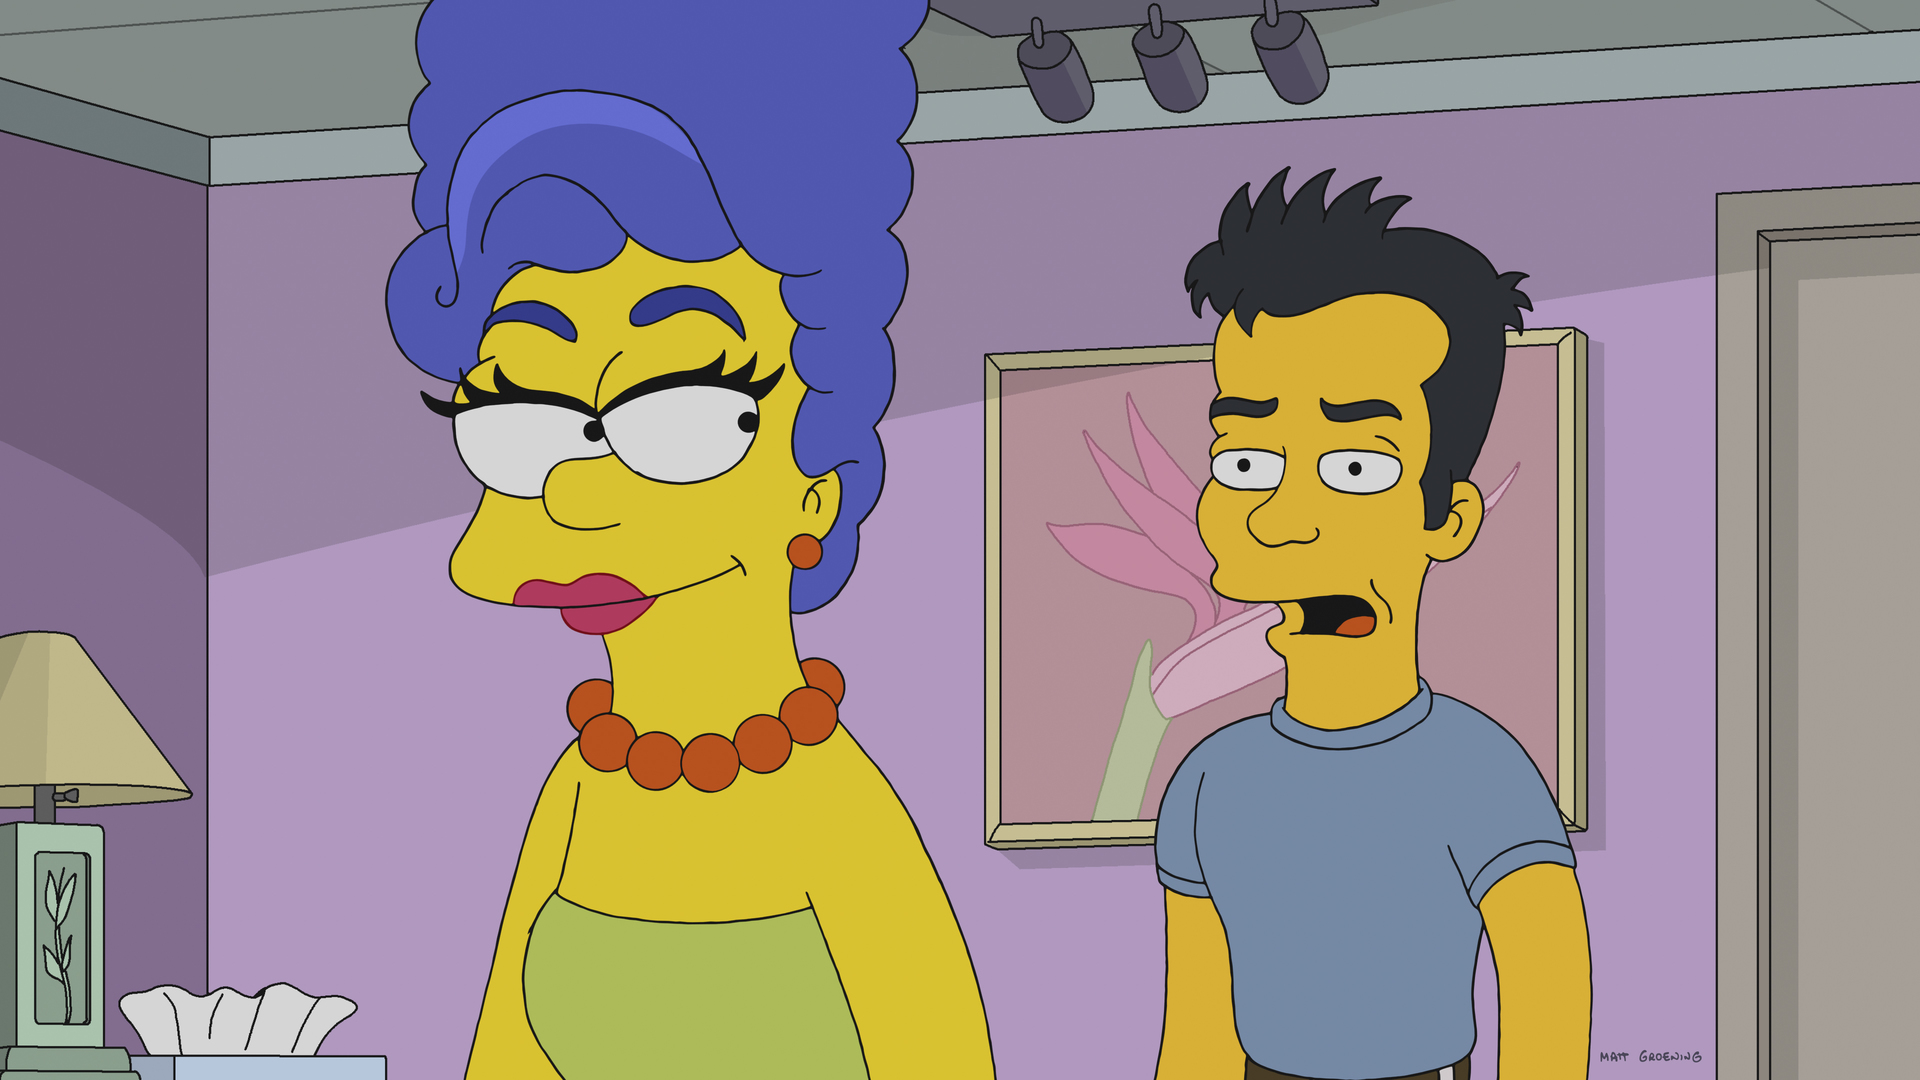 image werking mom promo 3 png simpsons wiki fandom powered by